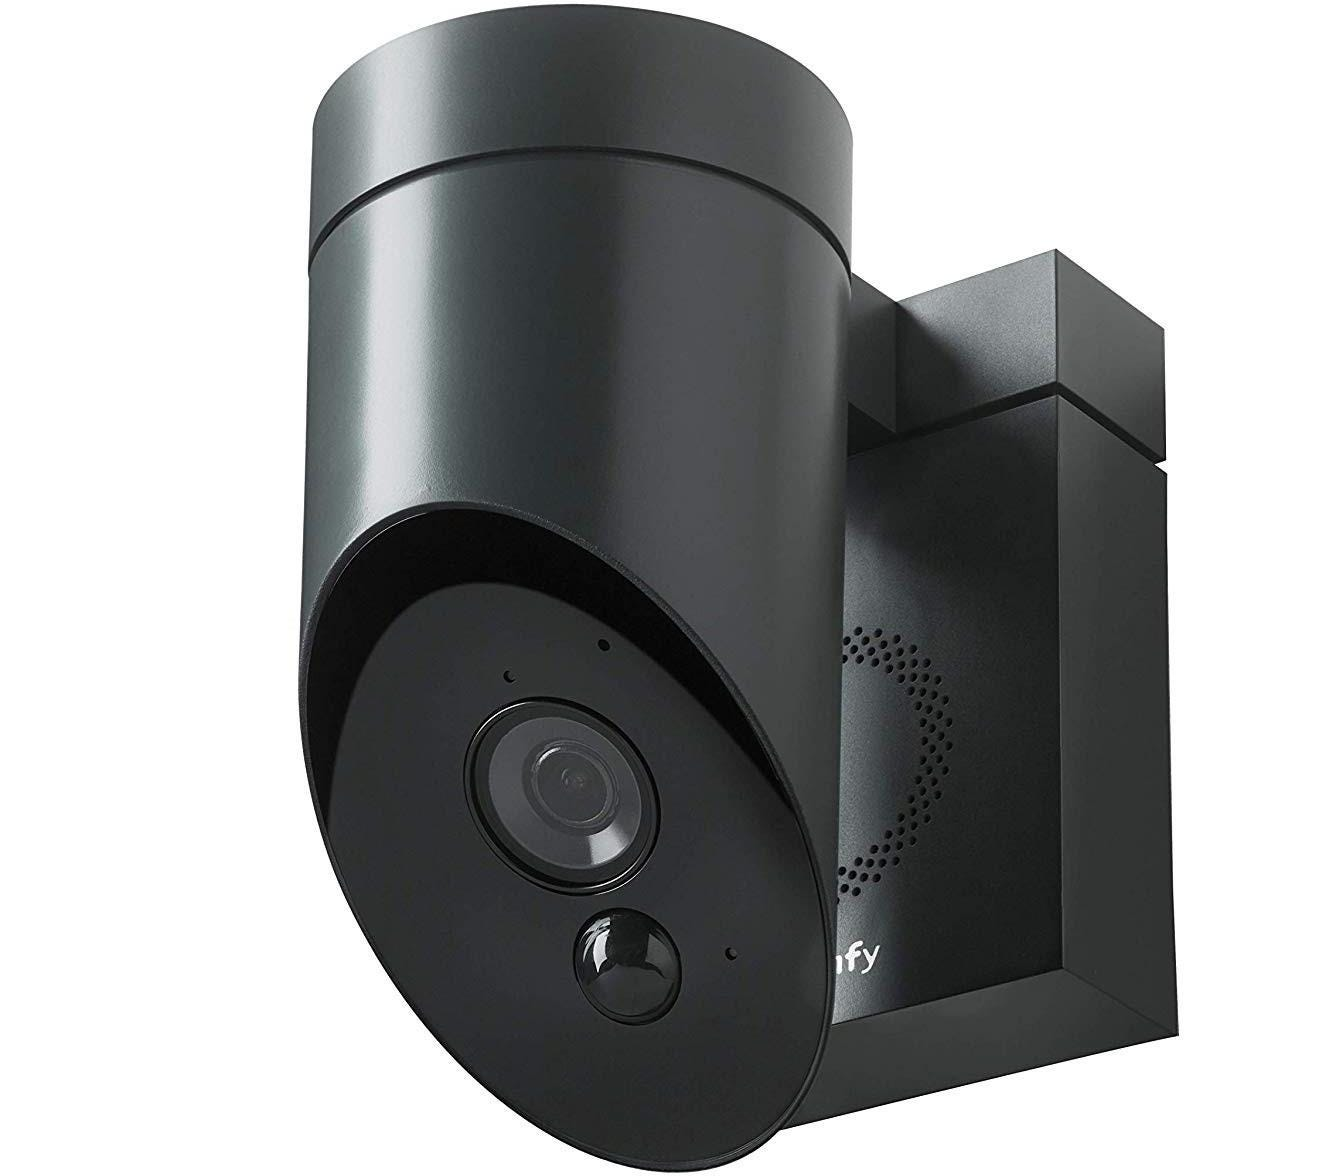 Somfy Outdoor HD Camera for Home Security Systems -Anthracite Grey